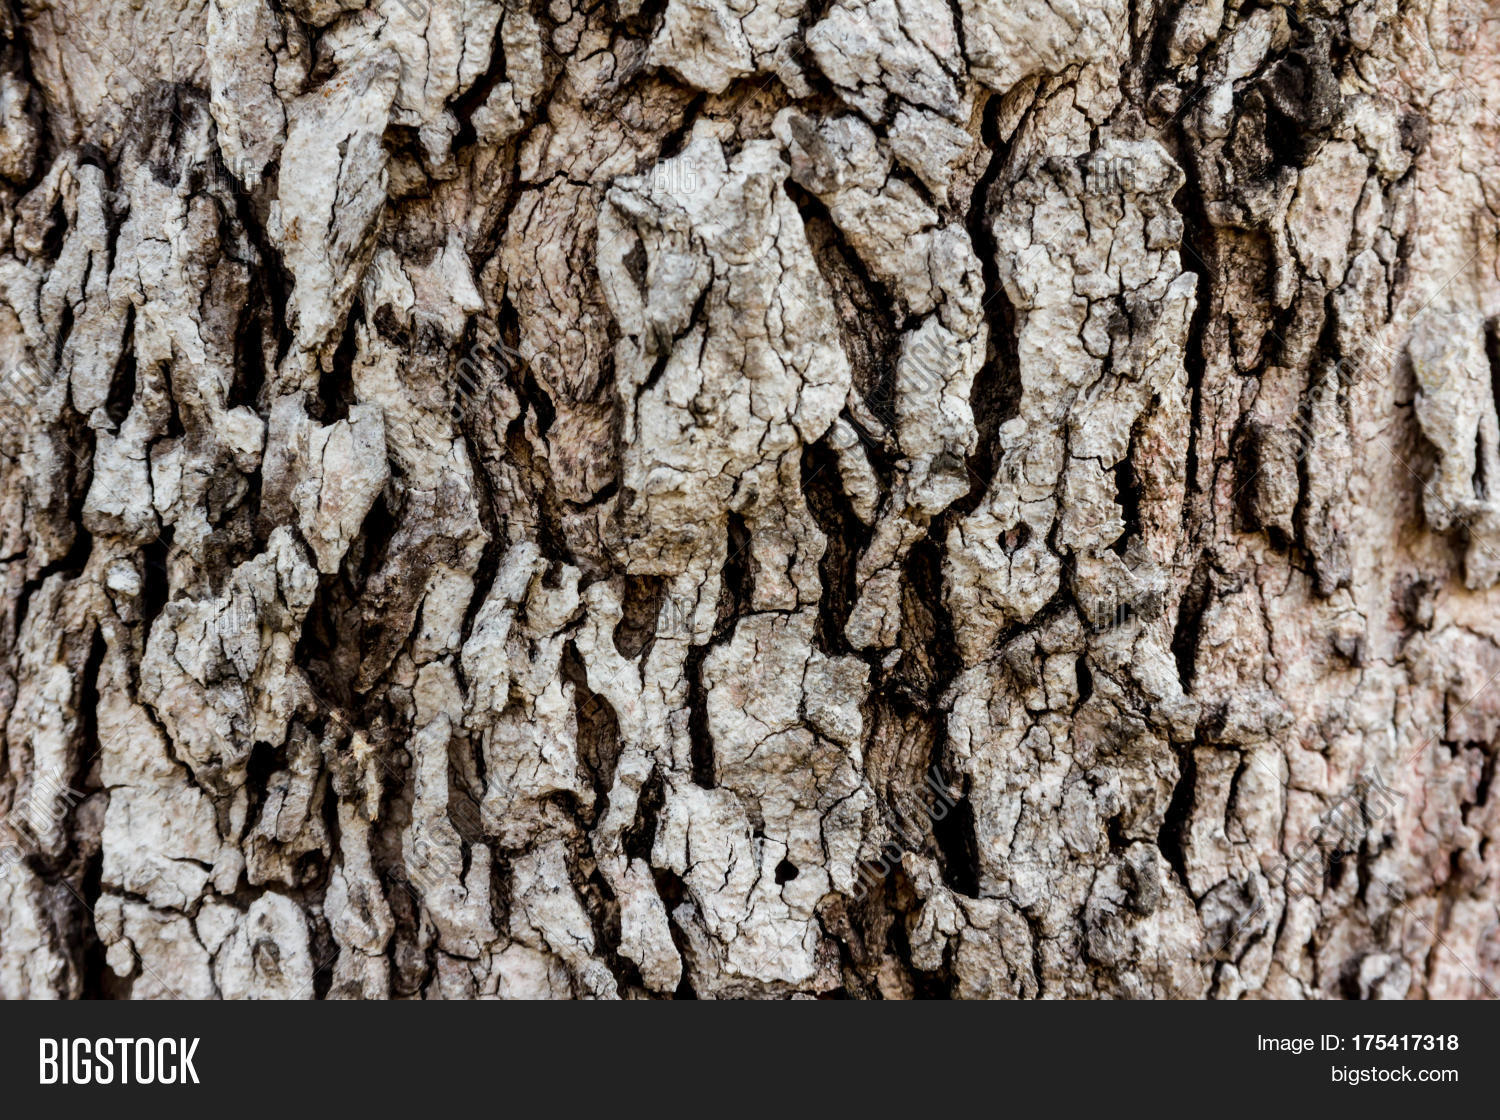 Rough Texture Background: Old Rough Wood Texture. Wooden Texture. Wooden Background